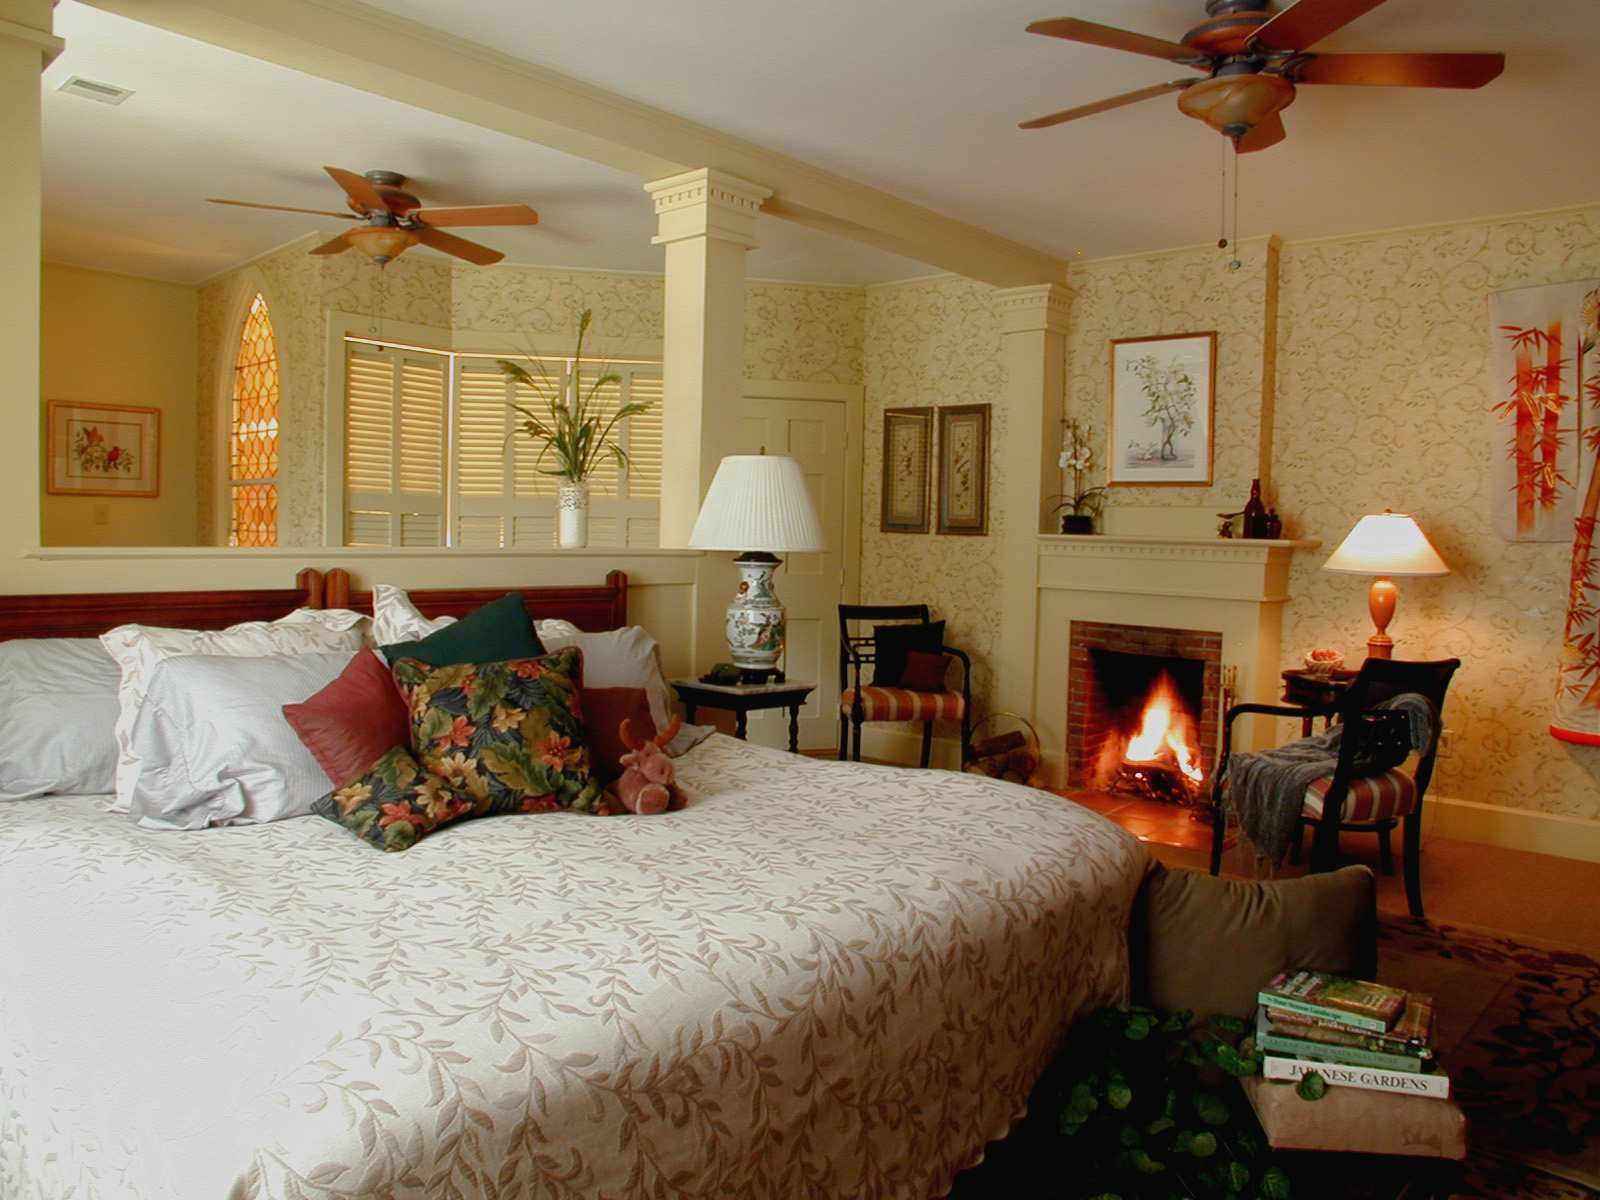 A guest room in the Notchland Inn